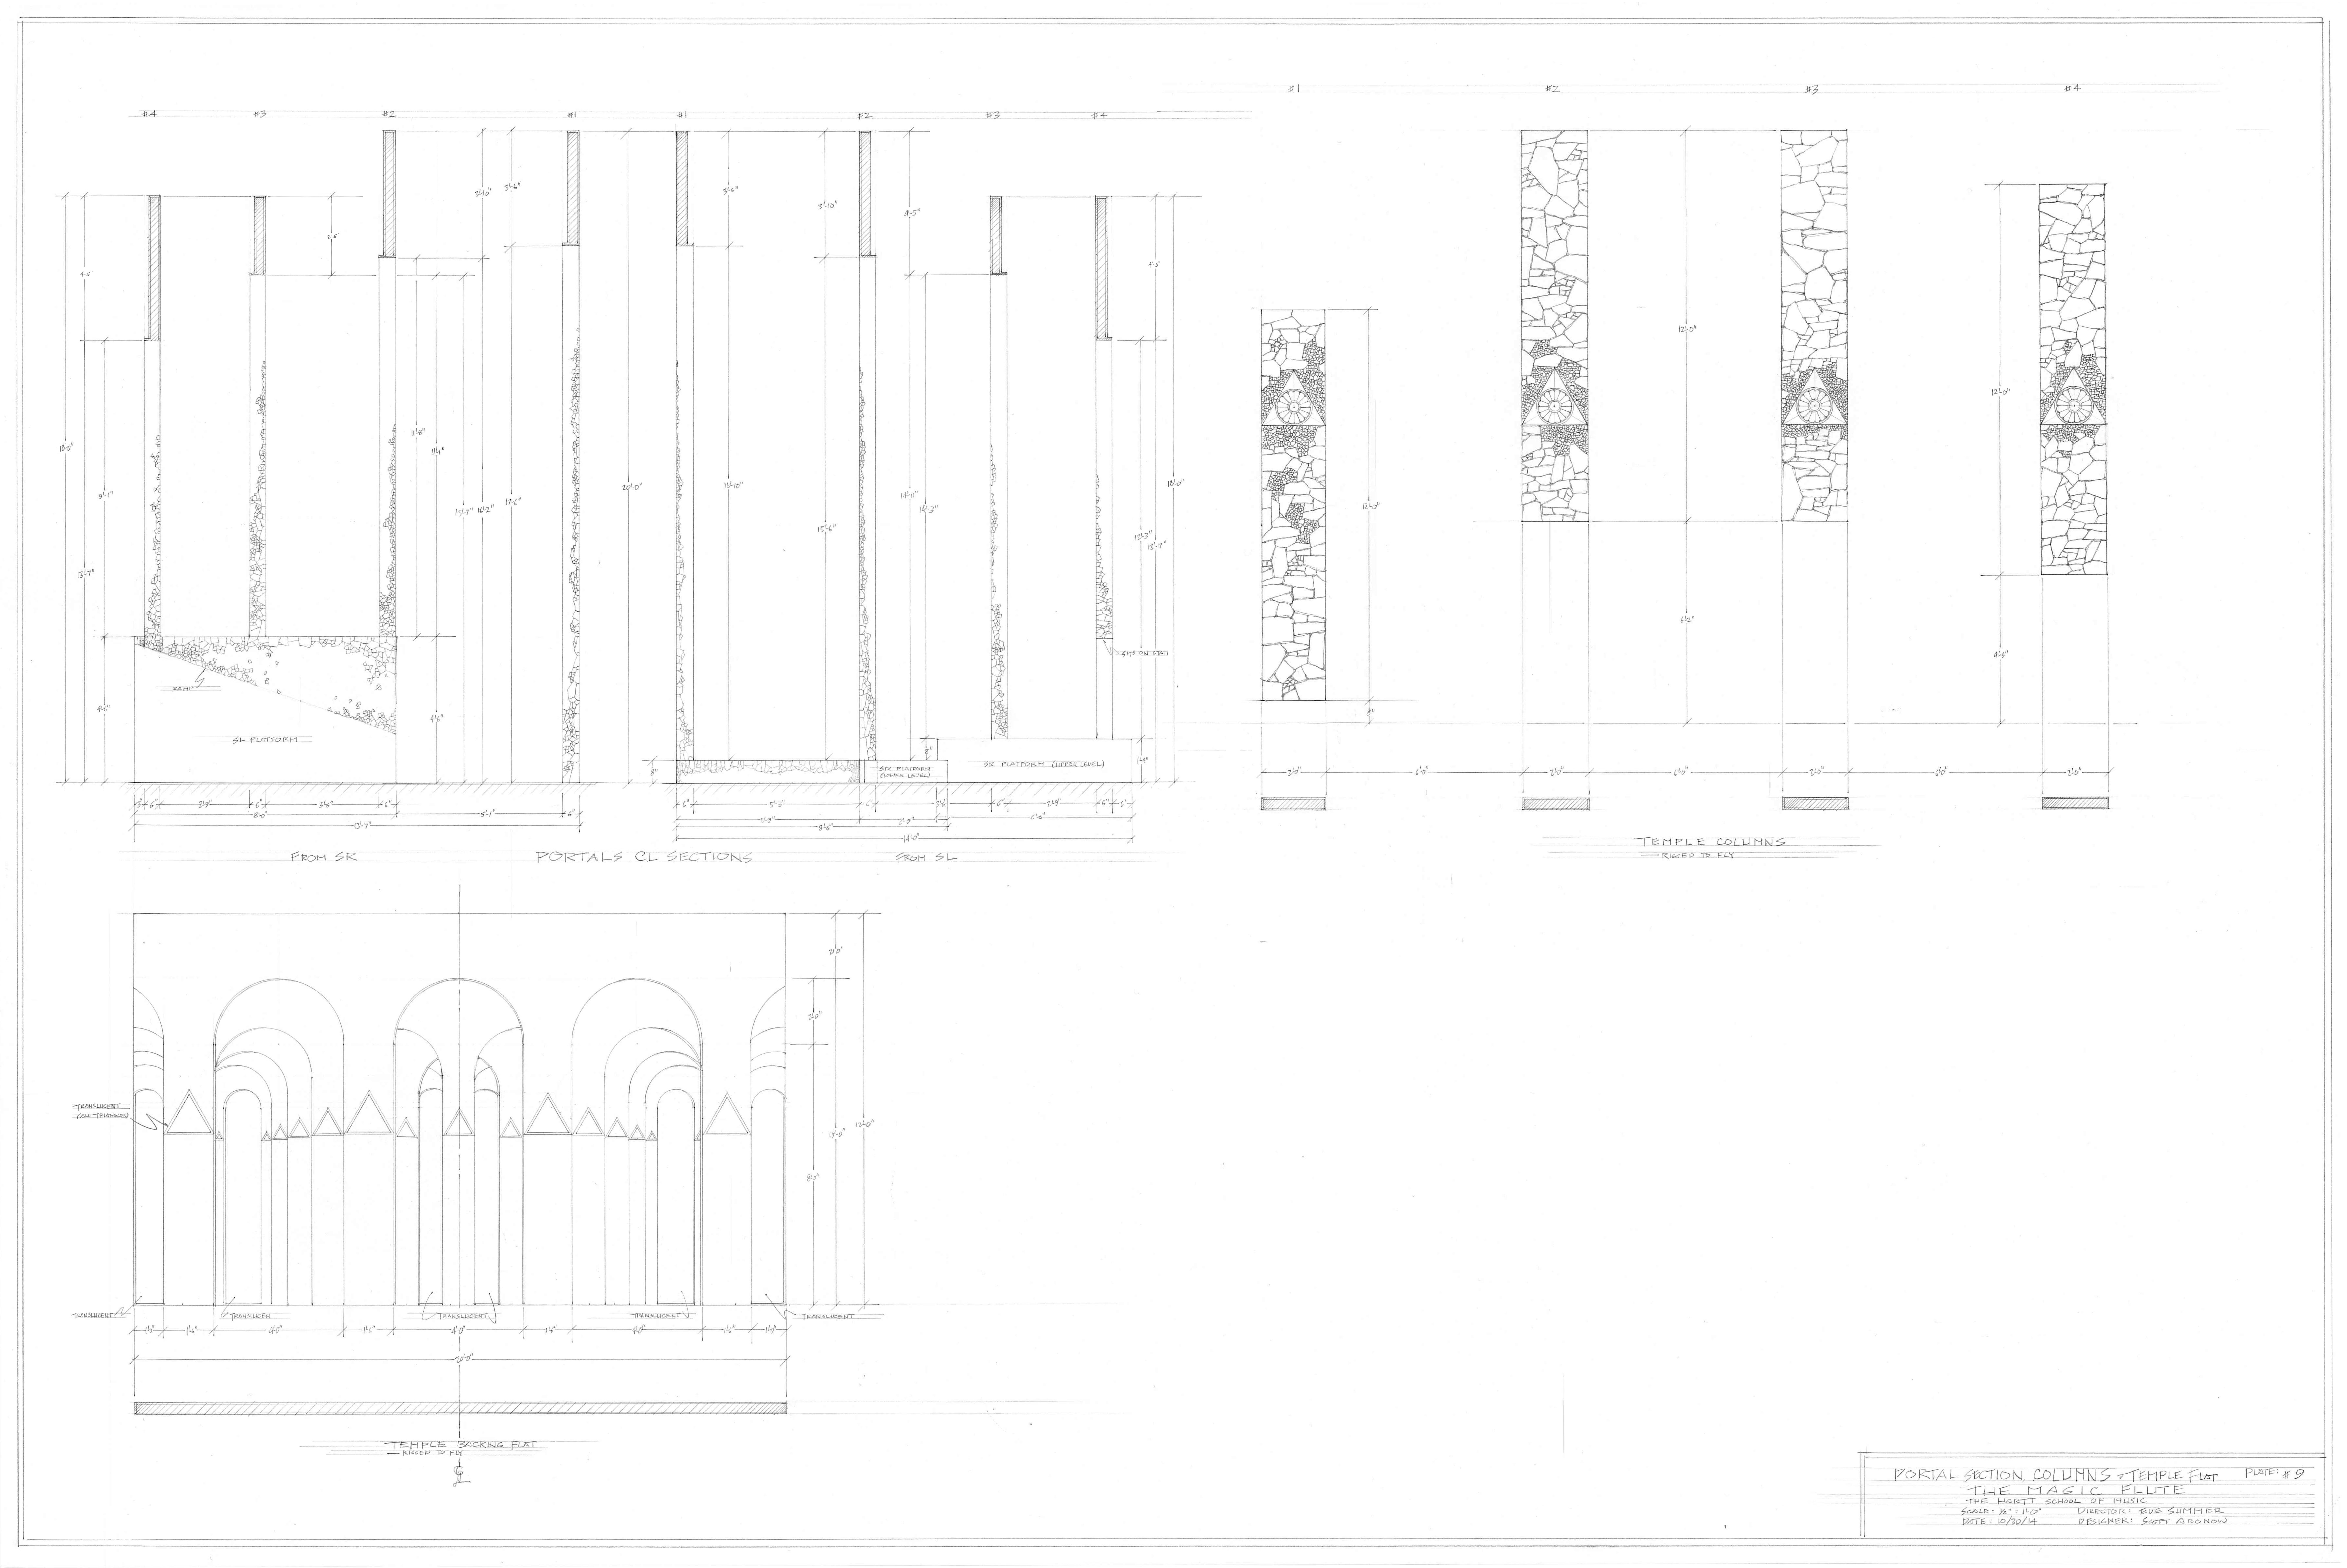 Plate #9. Portal Section, Columns and Temple Flat